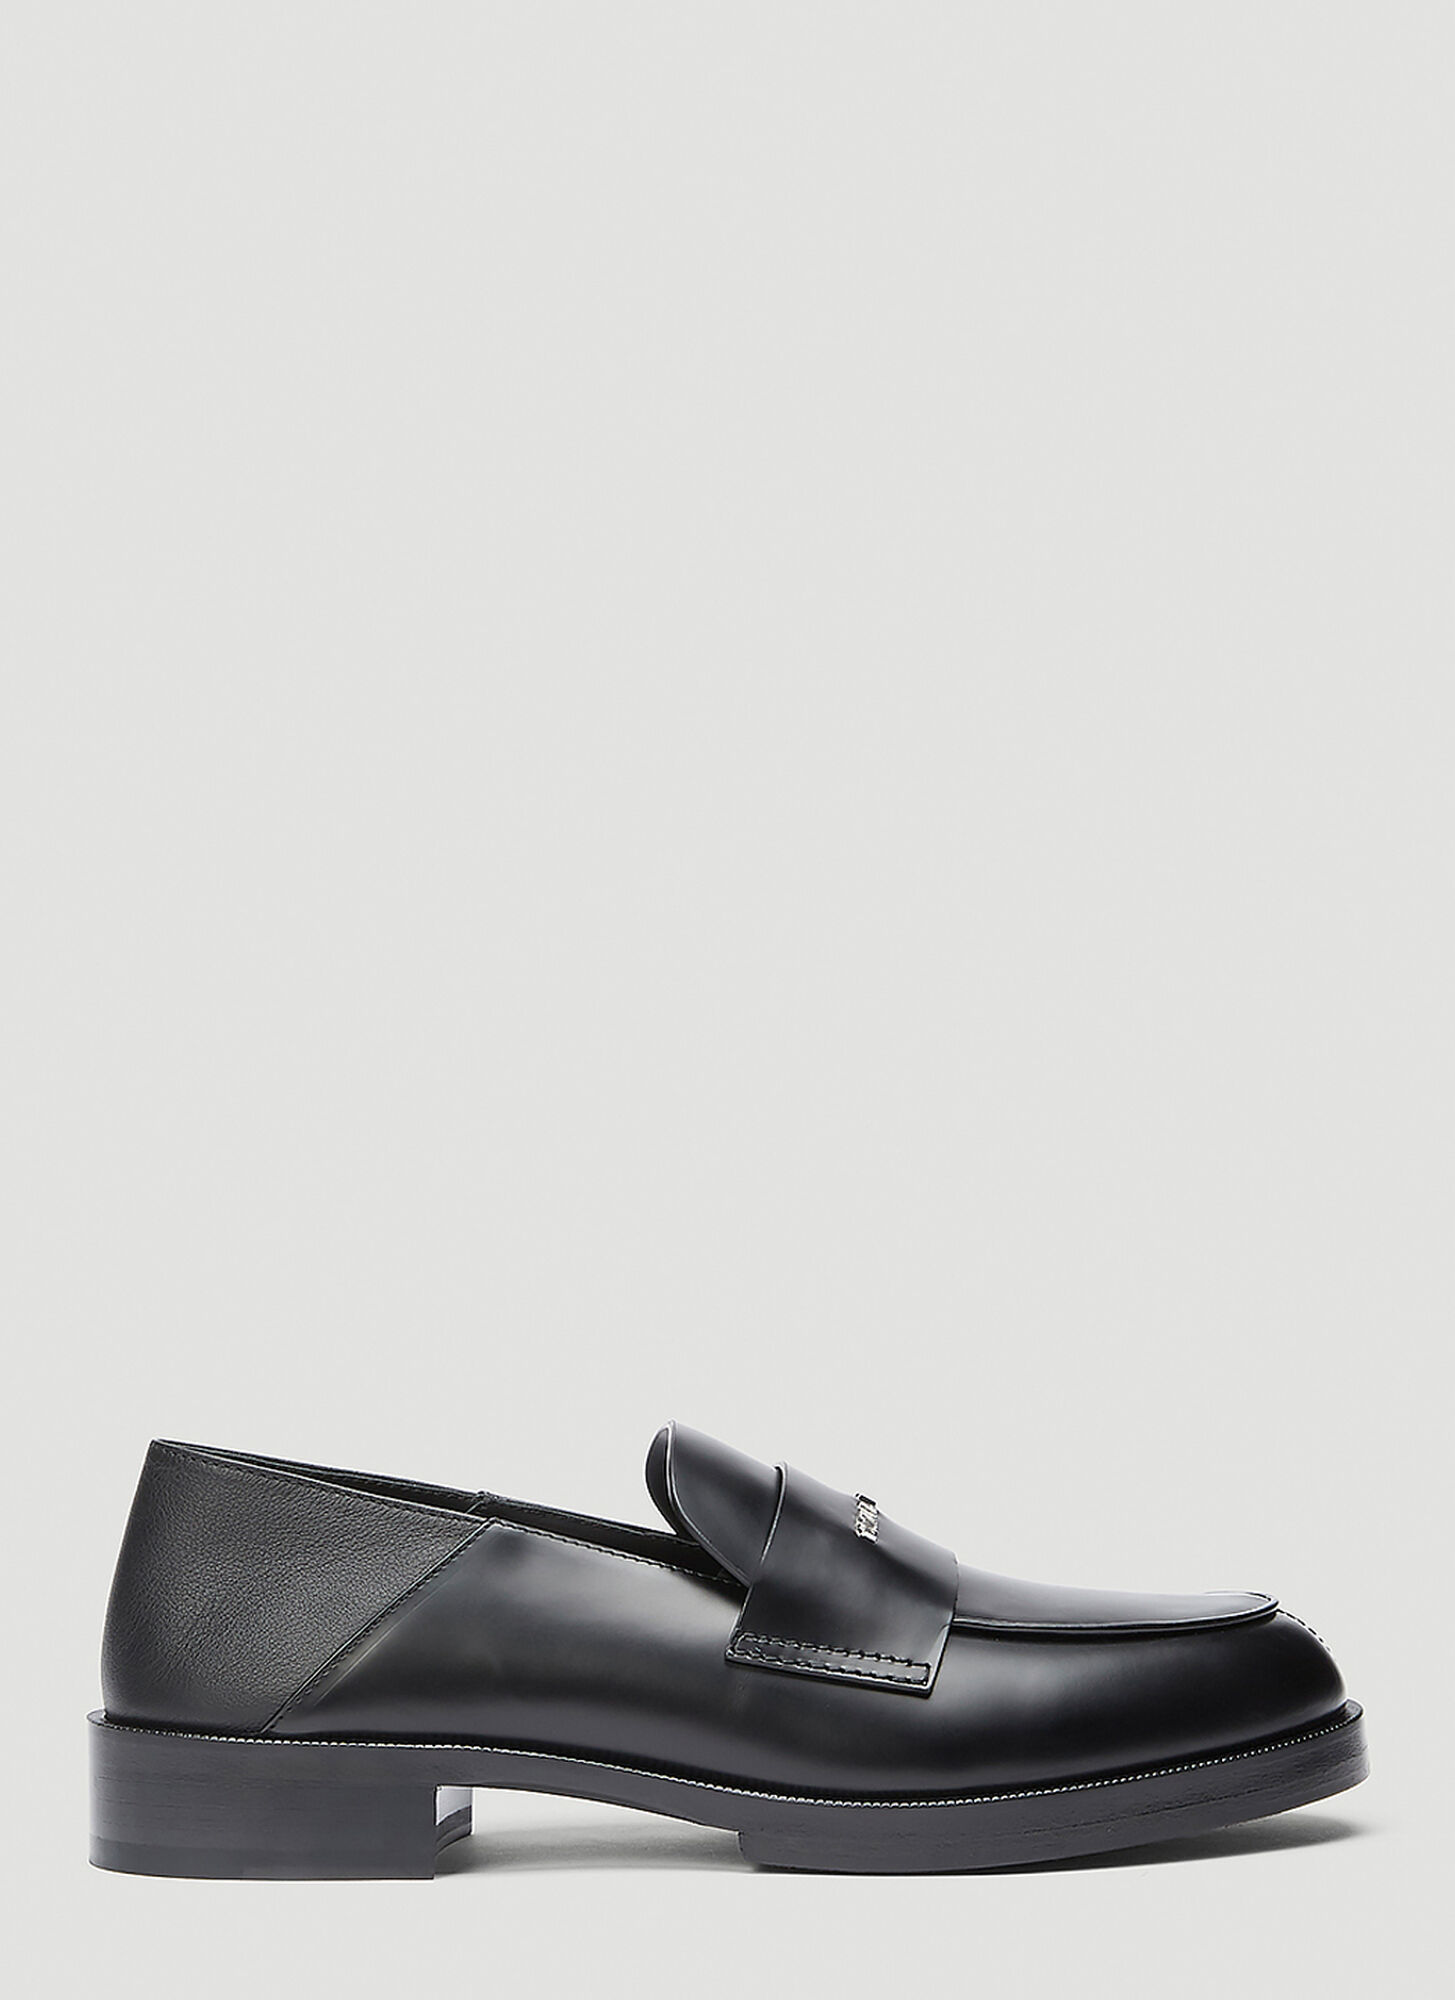 1017 ALYX 9SM Slip-On Leather Loafers